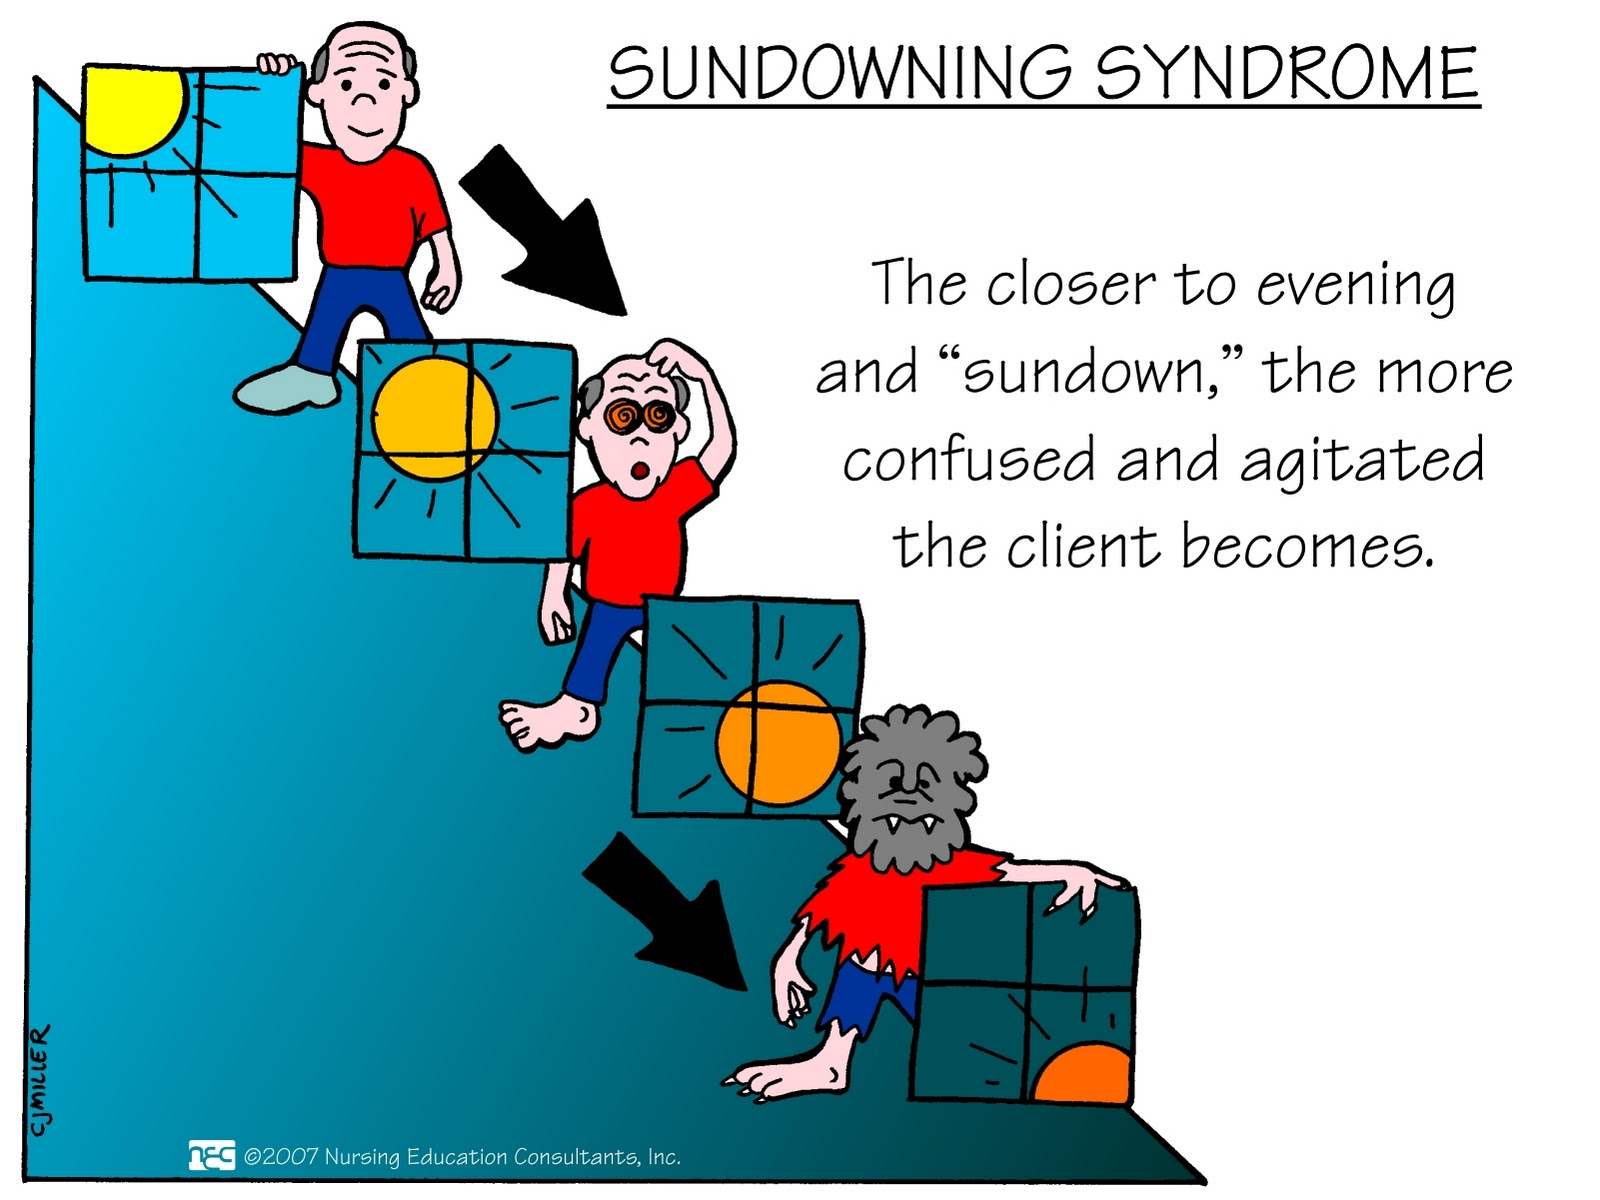 sundowning syndrome Sundowner's syndrome : get expert advice and caregiver tips for coping with sundowning get support and strategies for dealing with the agitation, fear, and other mood and behavior changes that occur in dementia patients just before dark.